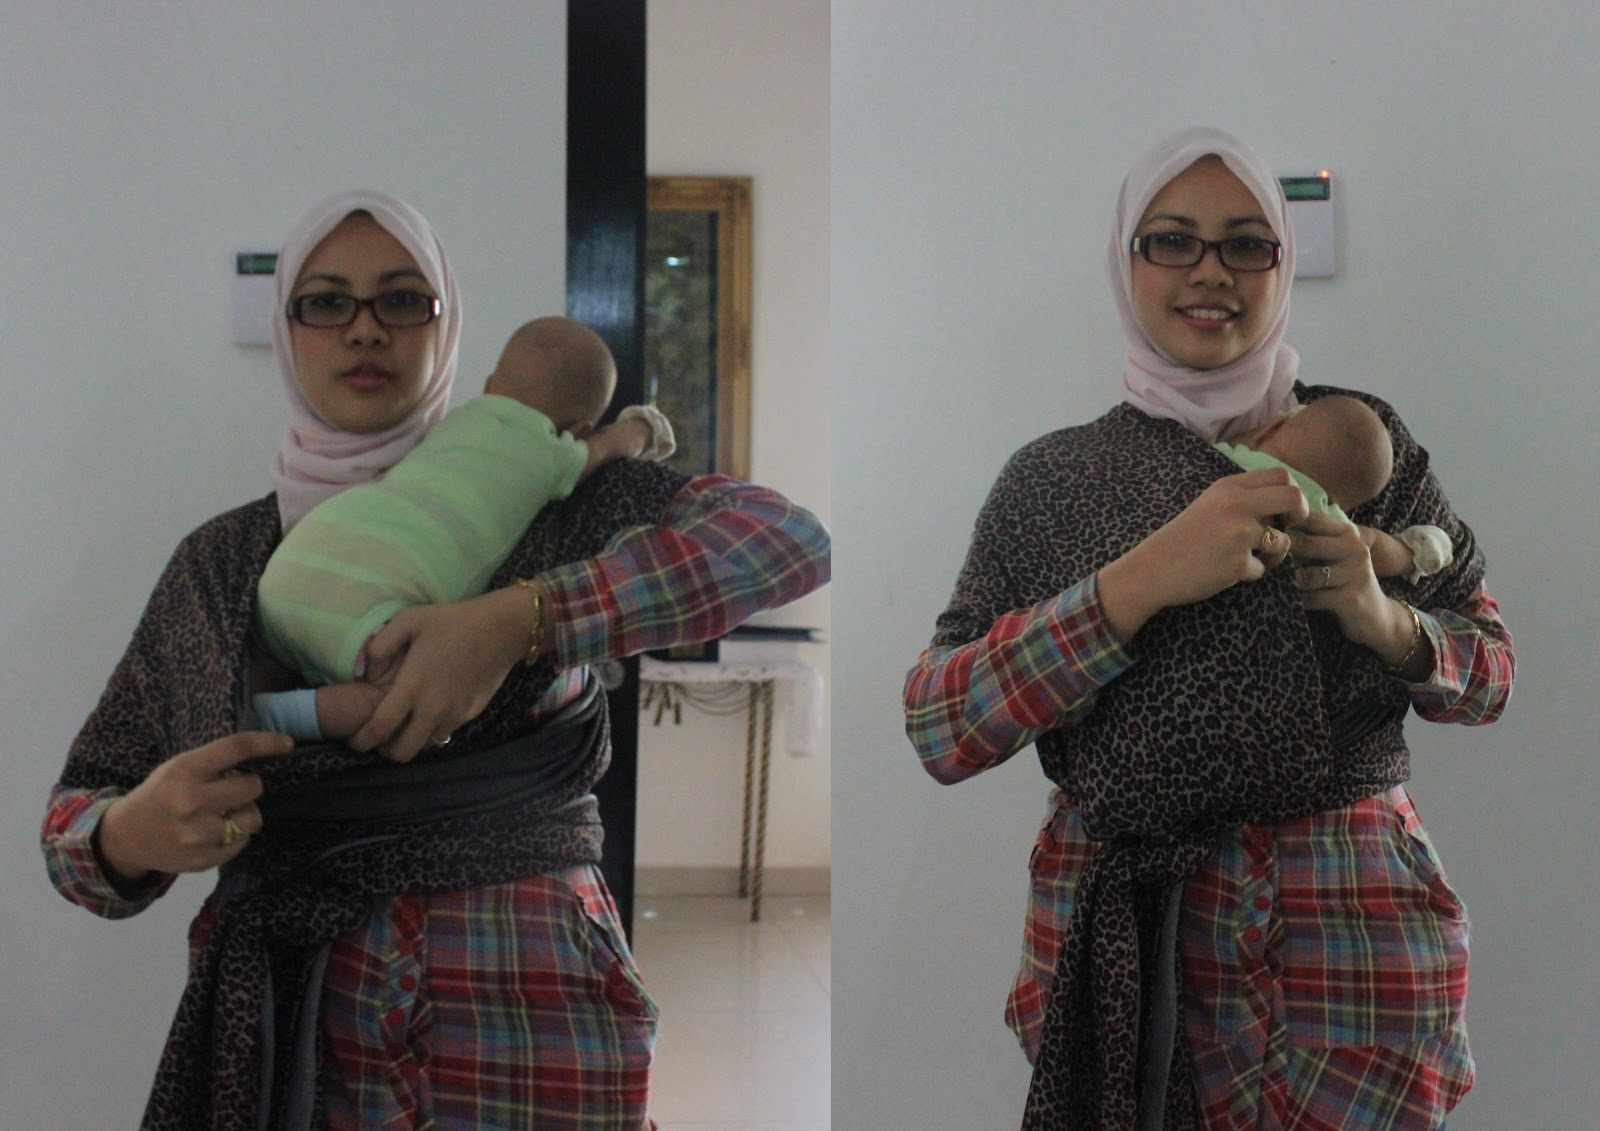 Khy Wrap Khy Wrap Tutorial Putting Your Baby In Newborn Hug Hold